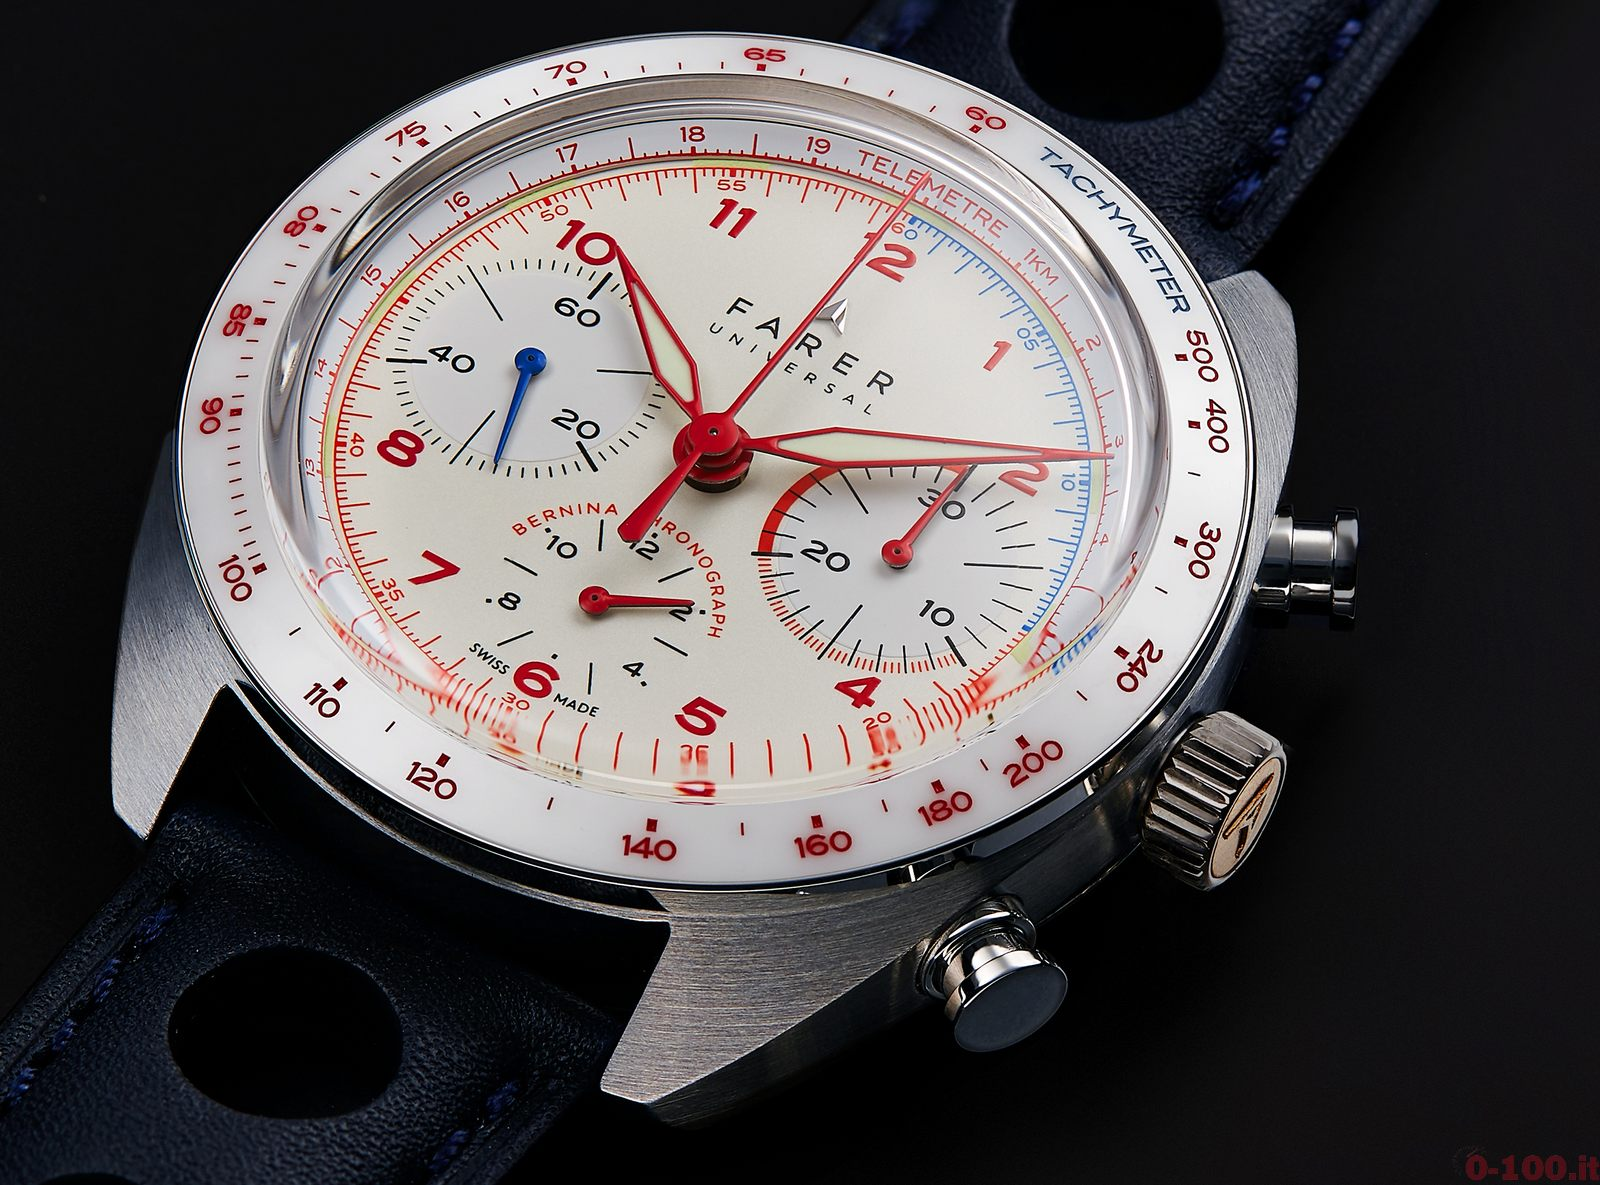 farer_bernina_chronograph_0-100_7